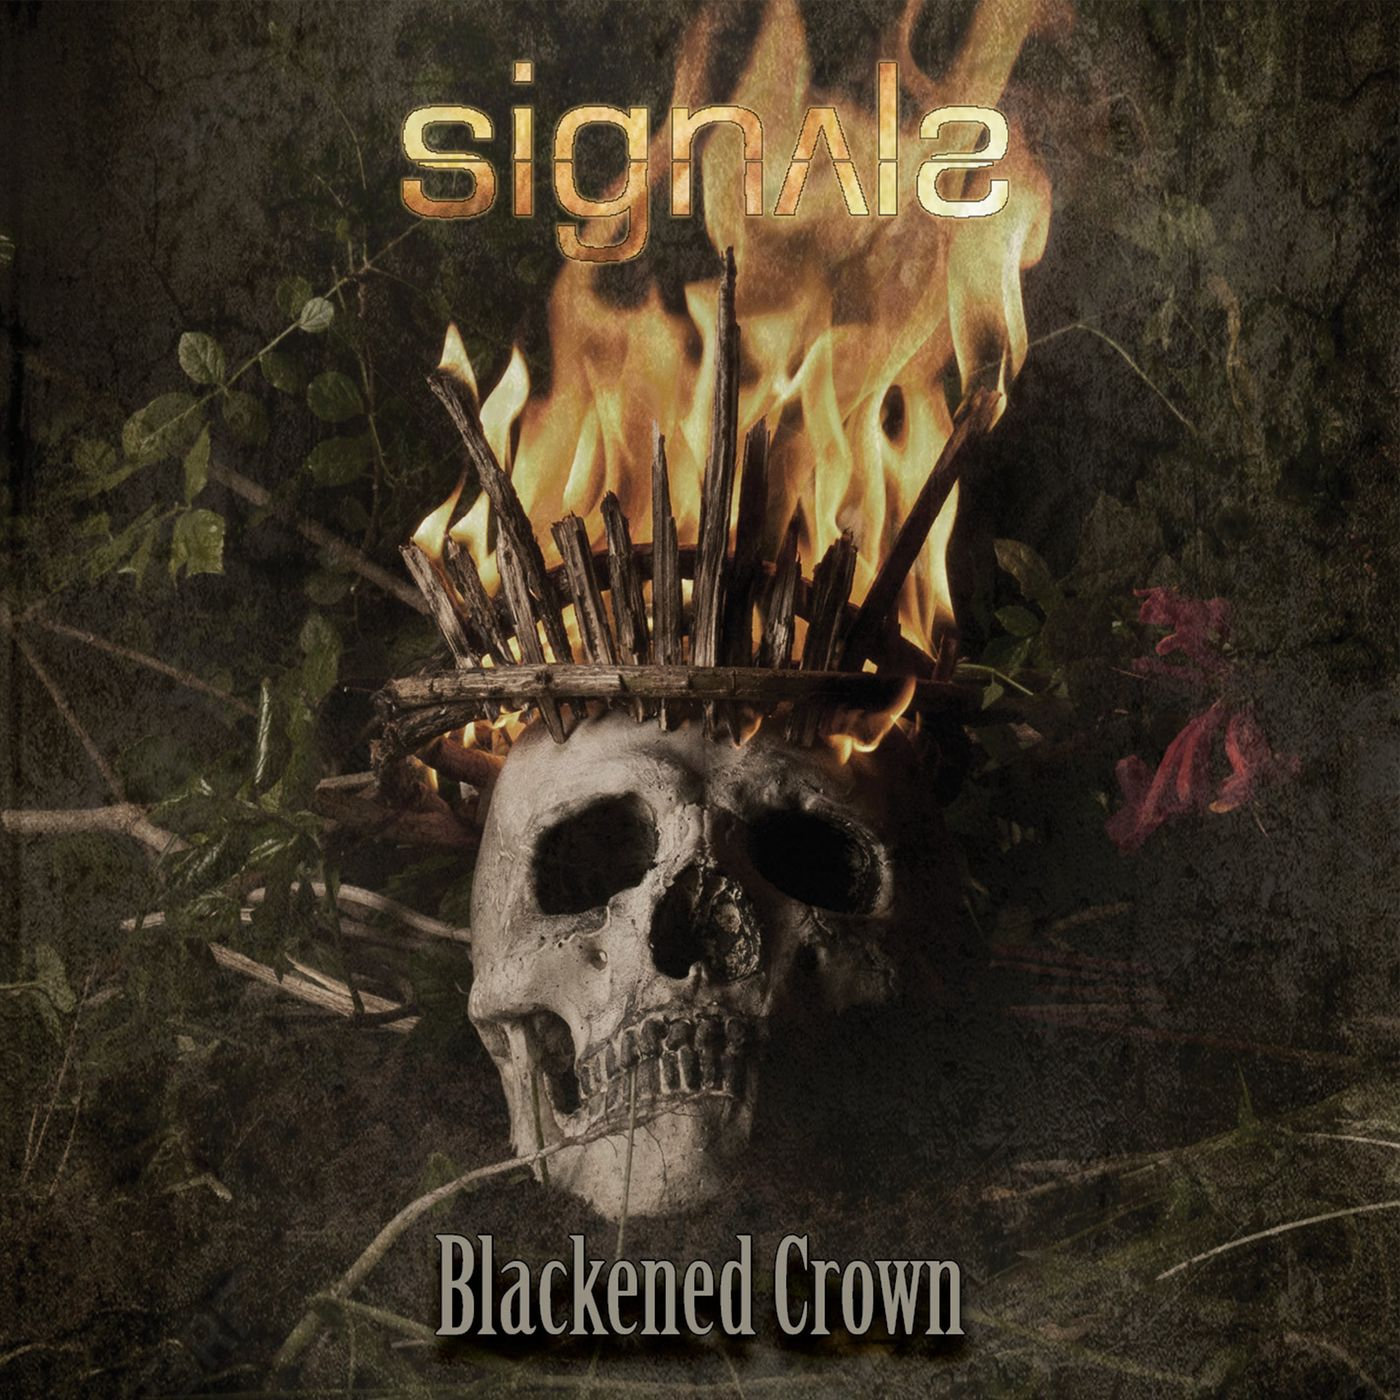 Signals - Blackened Crown [single] (2020)